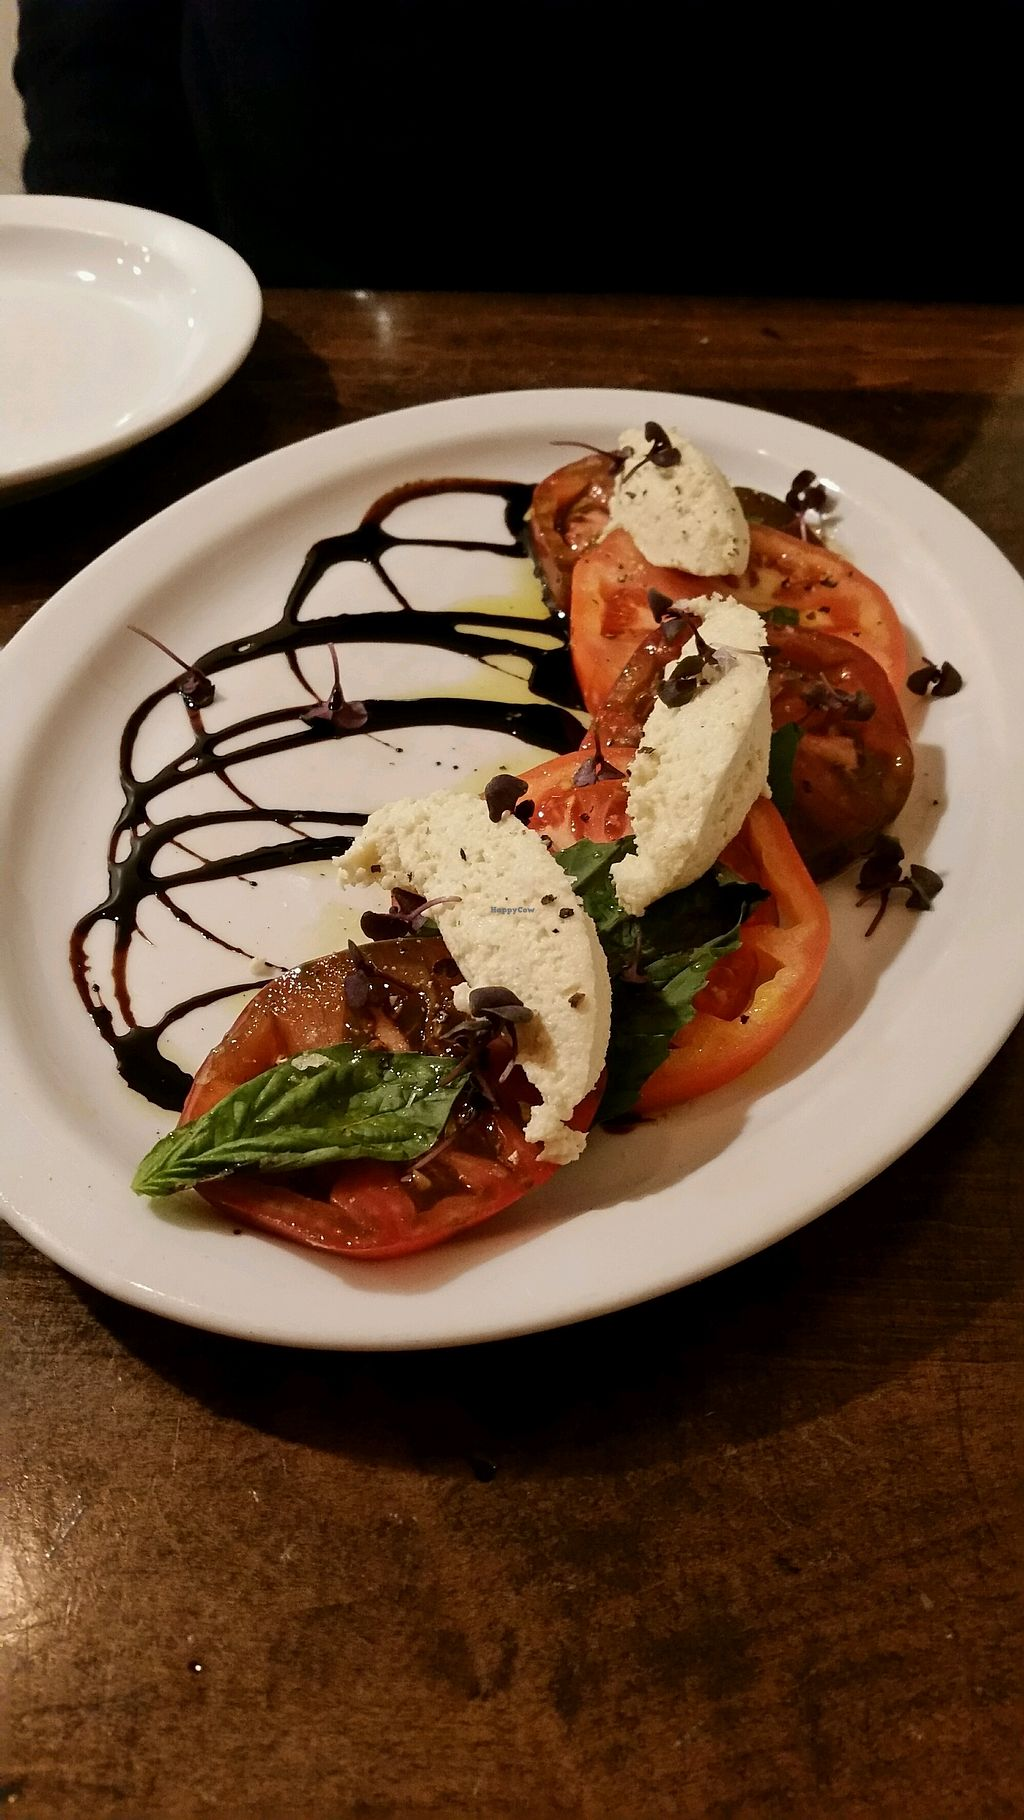 """Photo of Modern Love  by <a href=""""/members/profile/NancyVideon"""">NancyVideon</a> <br/>Heirloom Tomato Caprese <br/> November 8, 2017  - <a href='/contact/abuse/image/49171/323140'>Report</a>"""